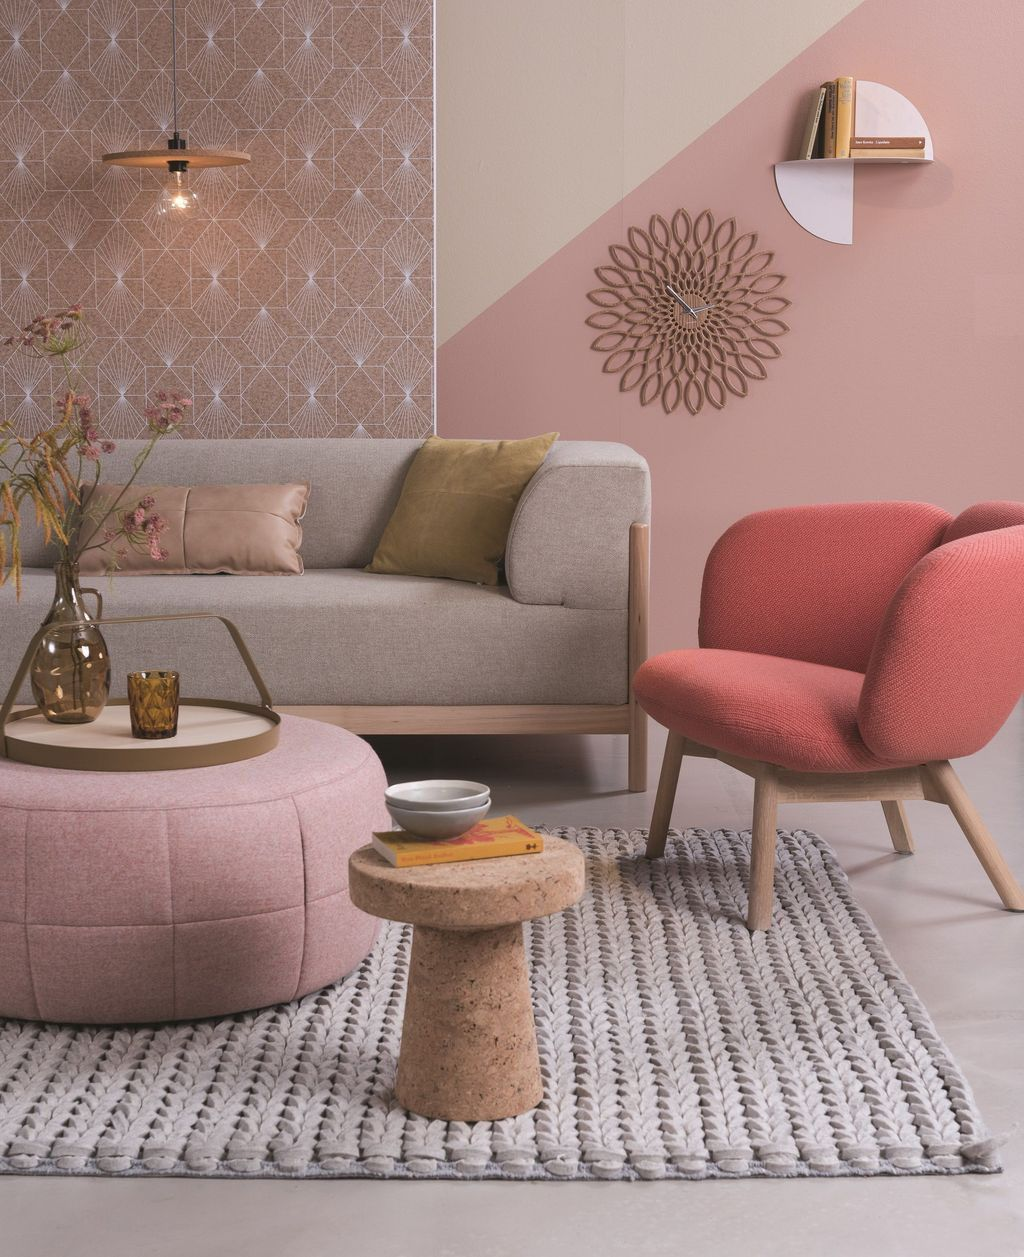 Different Scandinavian Interior Design Philippines Only On This Page Living Room Scandinavian Scandinavian Furniture Design Scandinavian Design Living Room